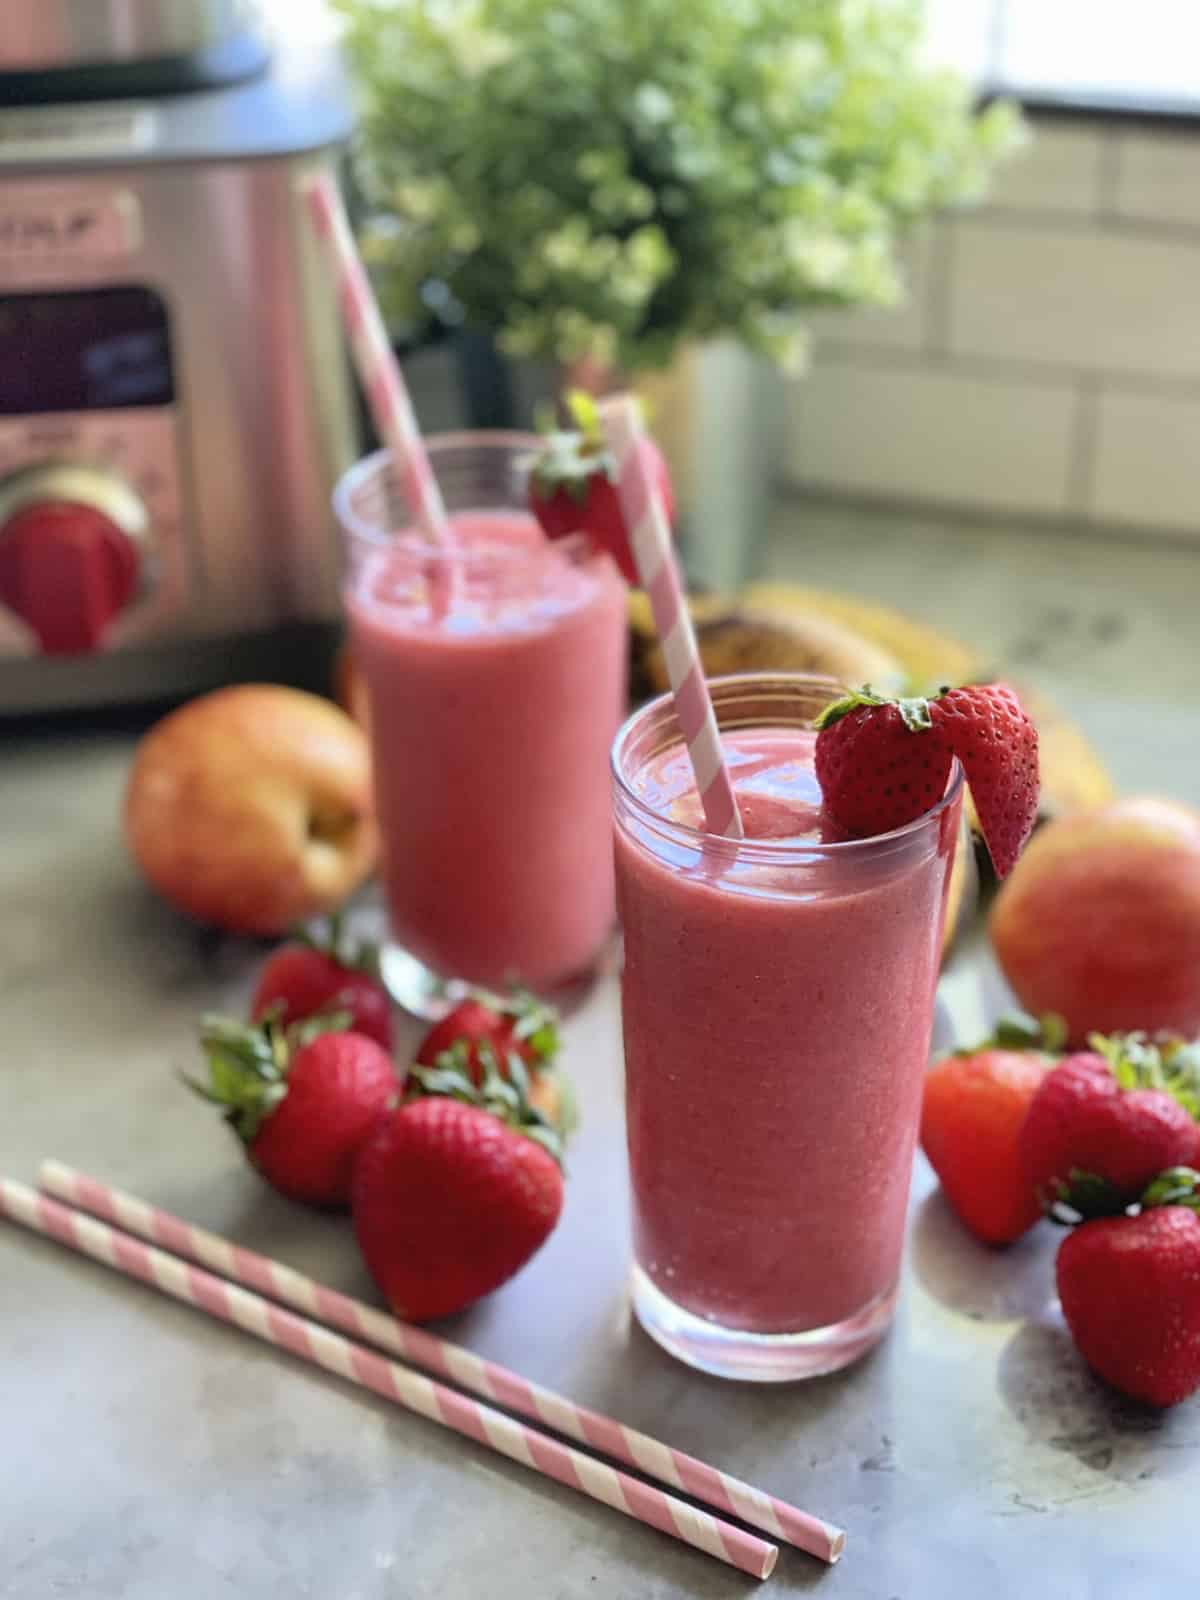 Stawberry smoothie in a glass with fresh strawberries  and paper straws around glass.